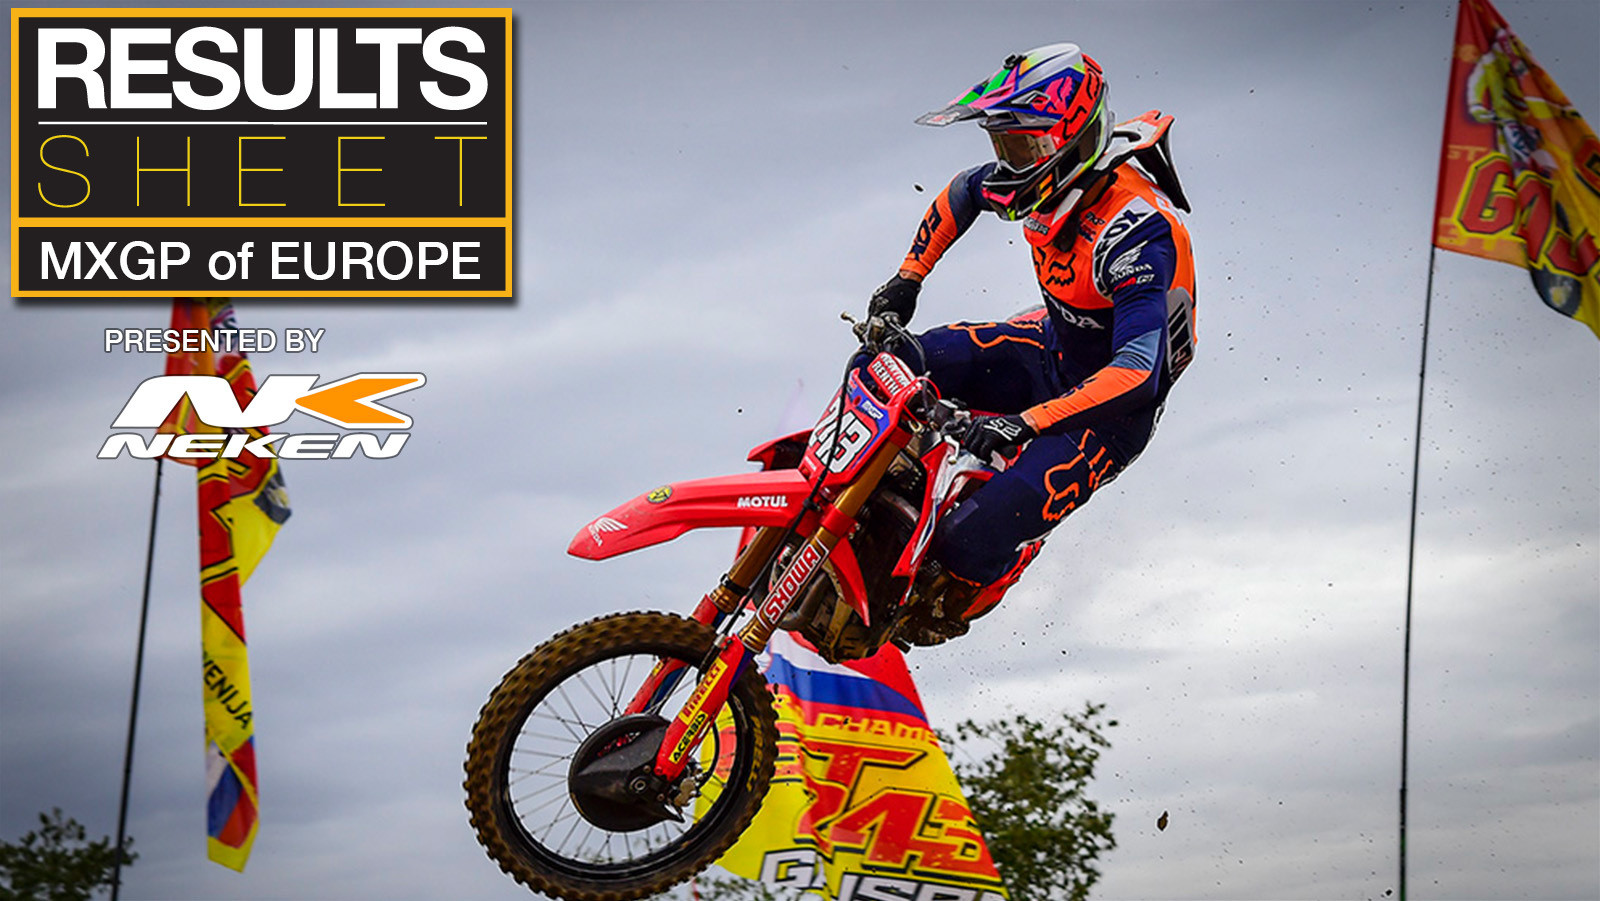 Results Sheet: 2020 MXGP of Europe